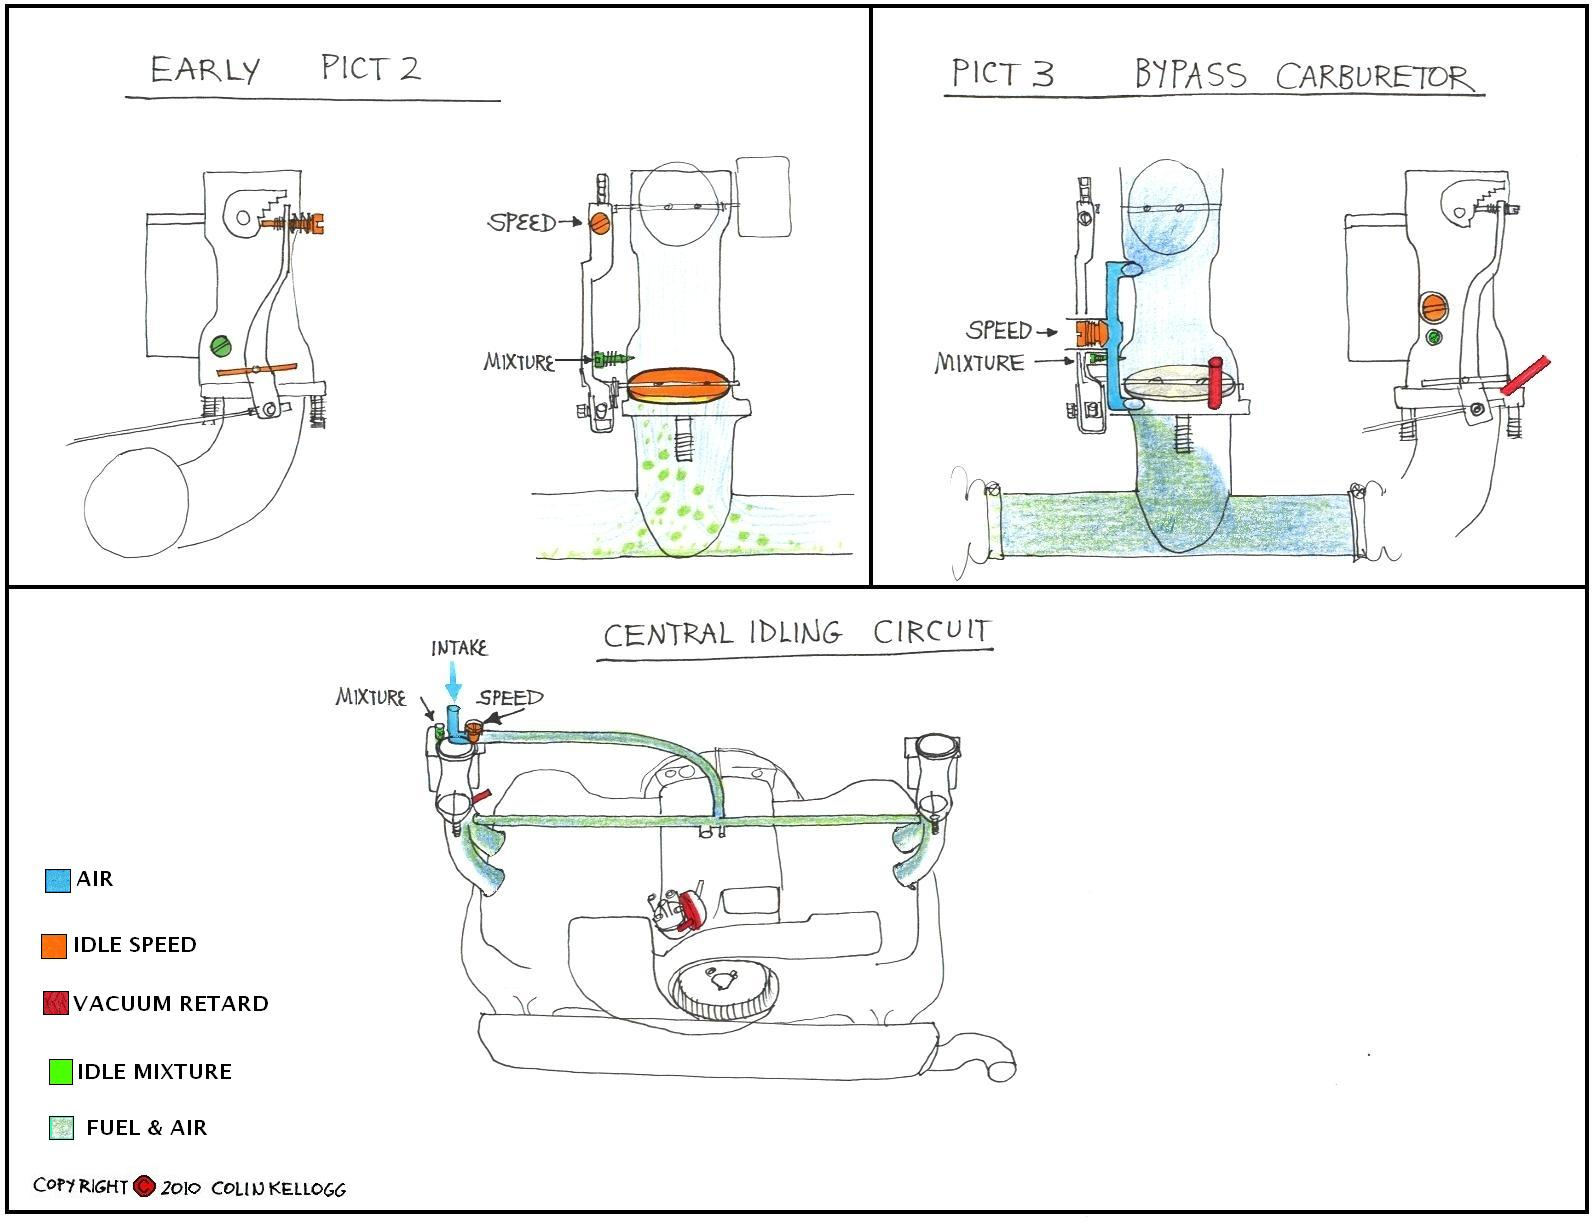 646071 vw carb diagram solex 34 pict 3 diagram \u2022 wiring diagrams j vw coil wiring at gsmx.co